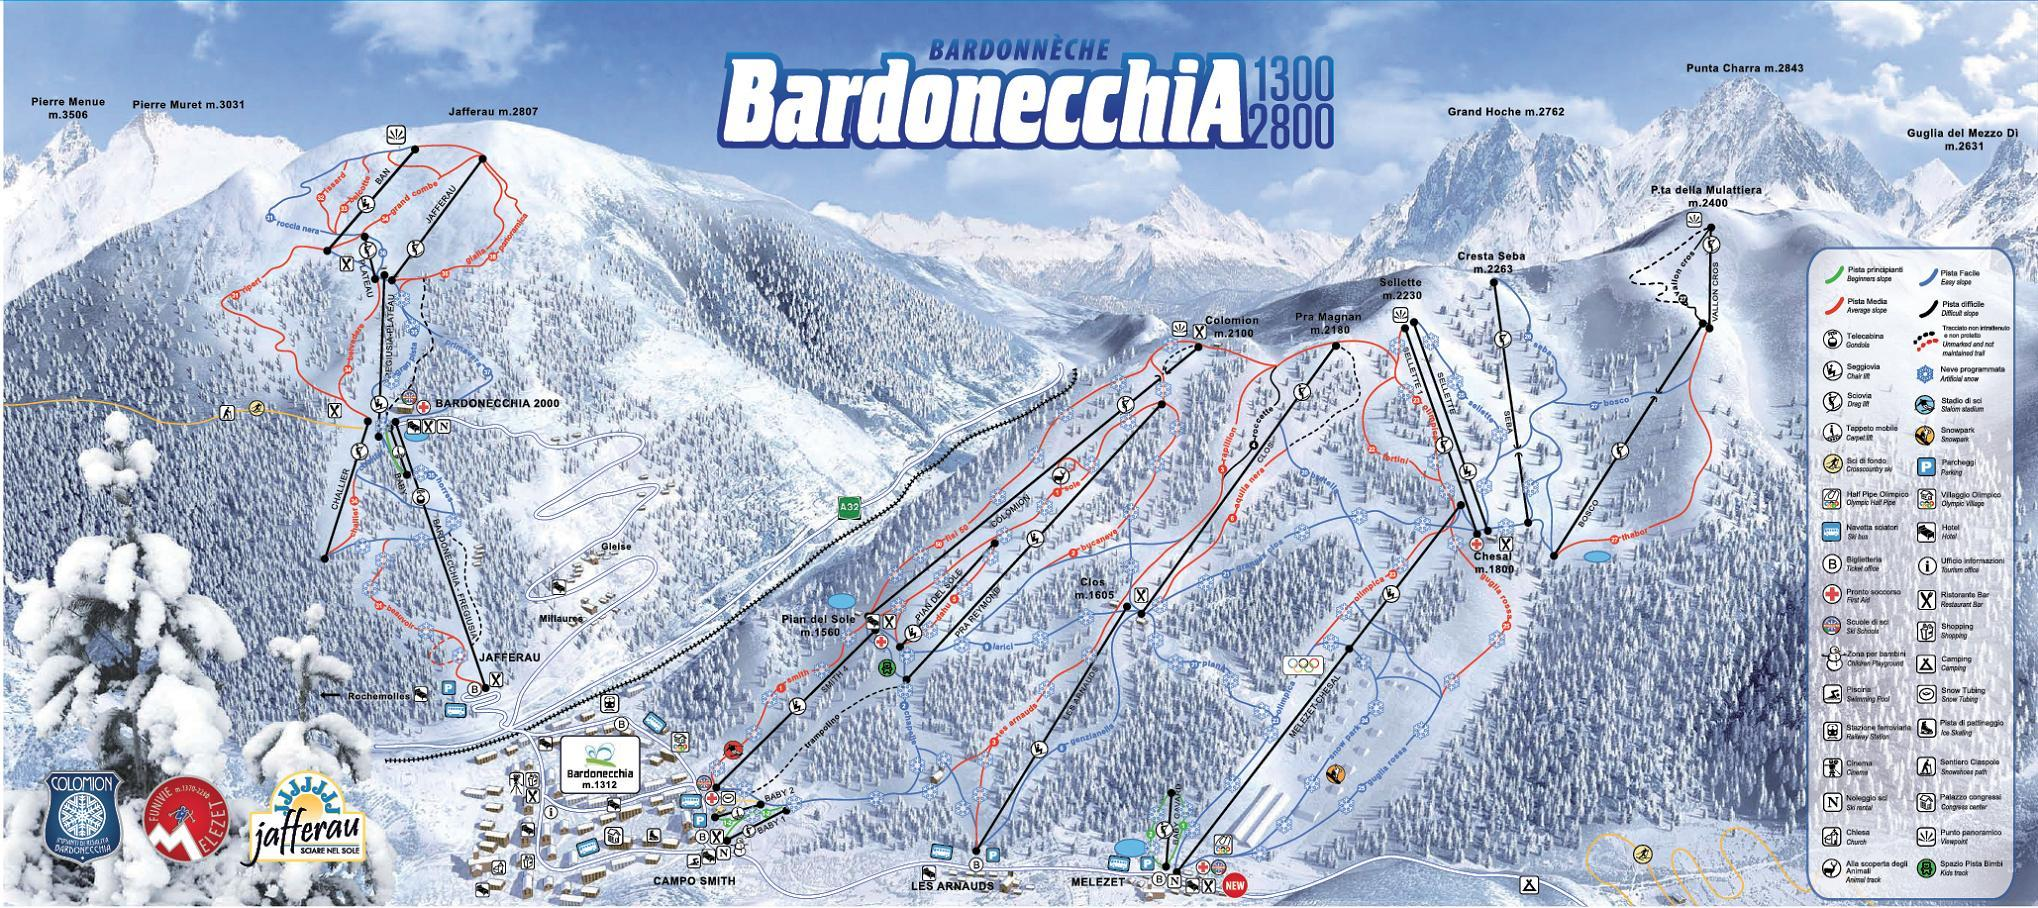 Bardonecchia Piste Map Plan of ski slopes and lifts OnTheSnow